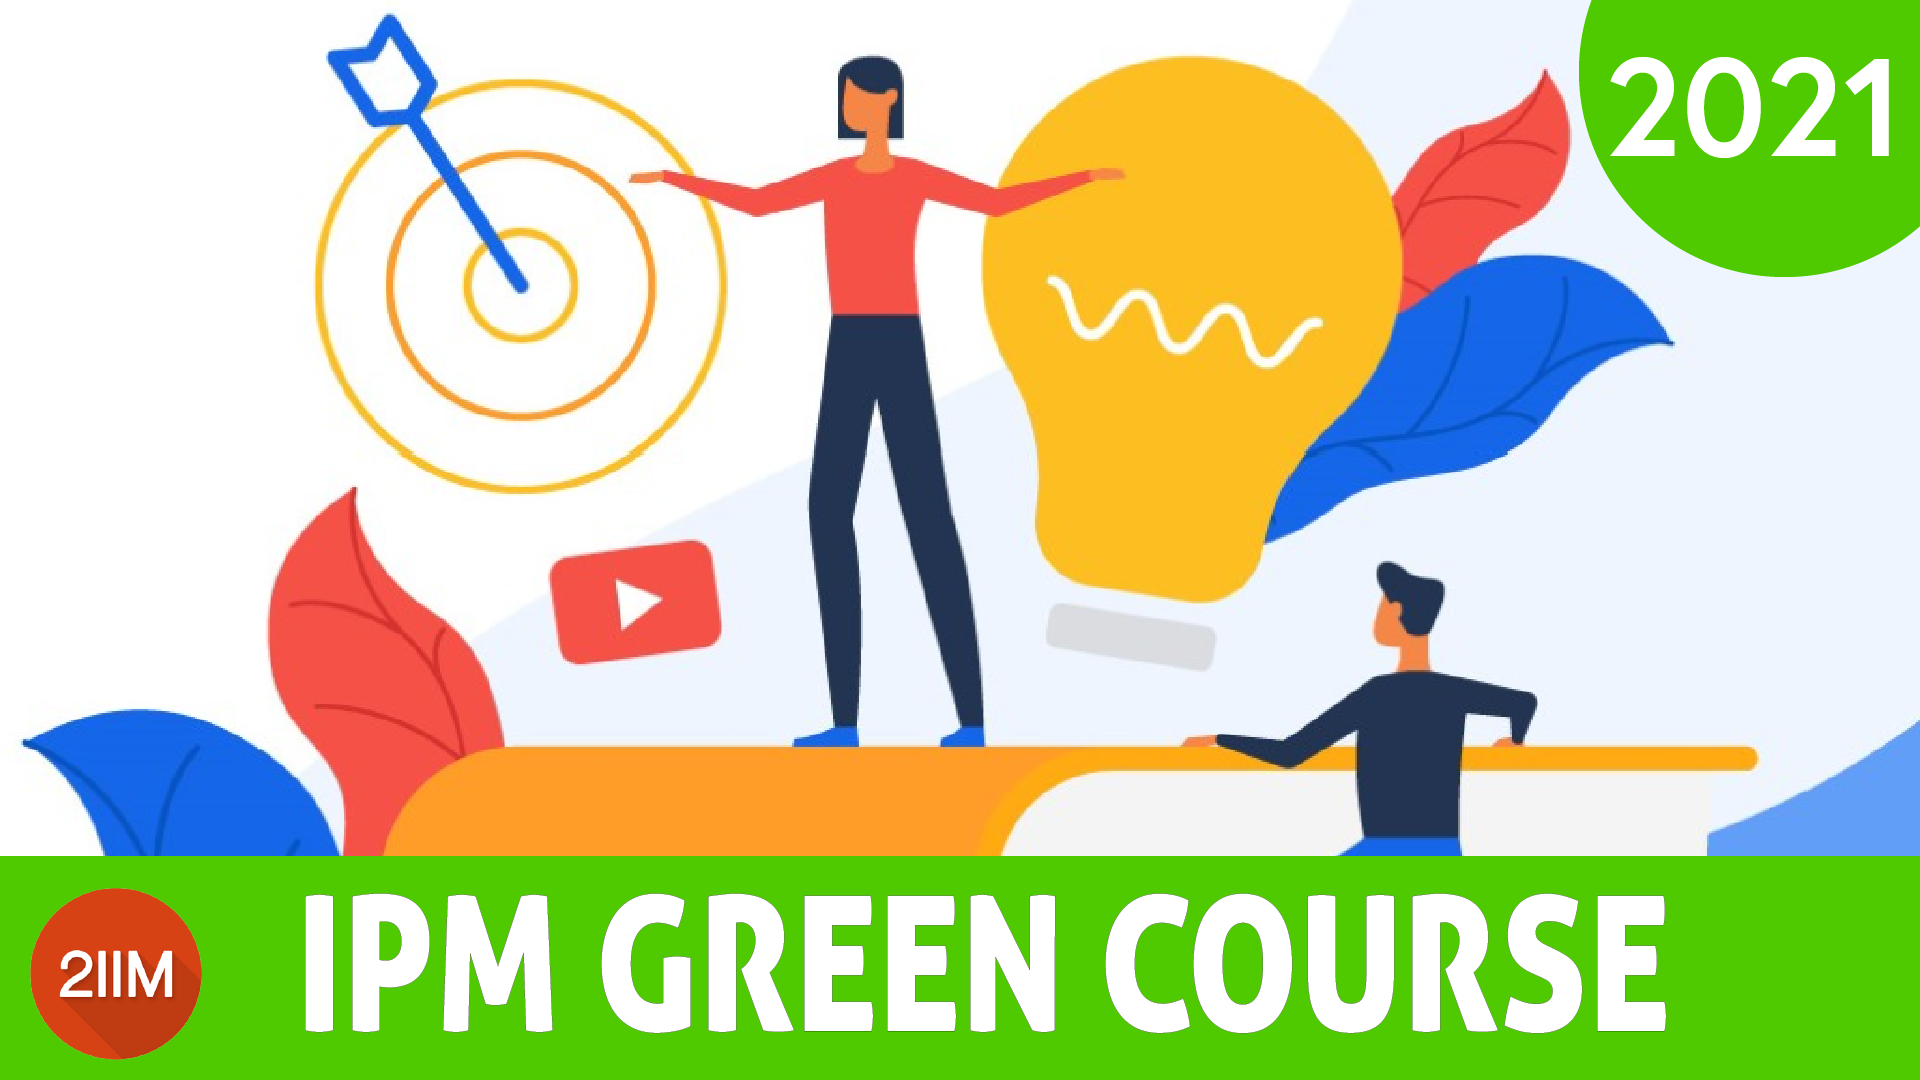 IPM Green Online Course for 2021